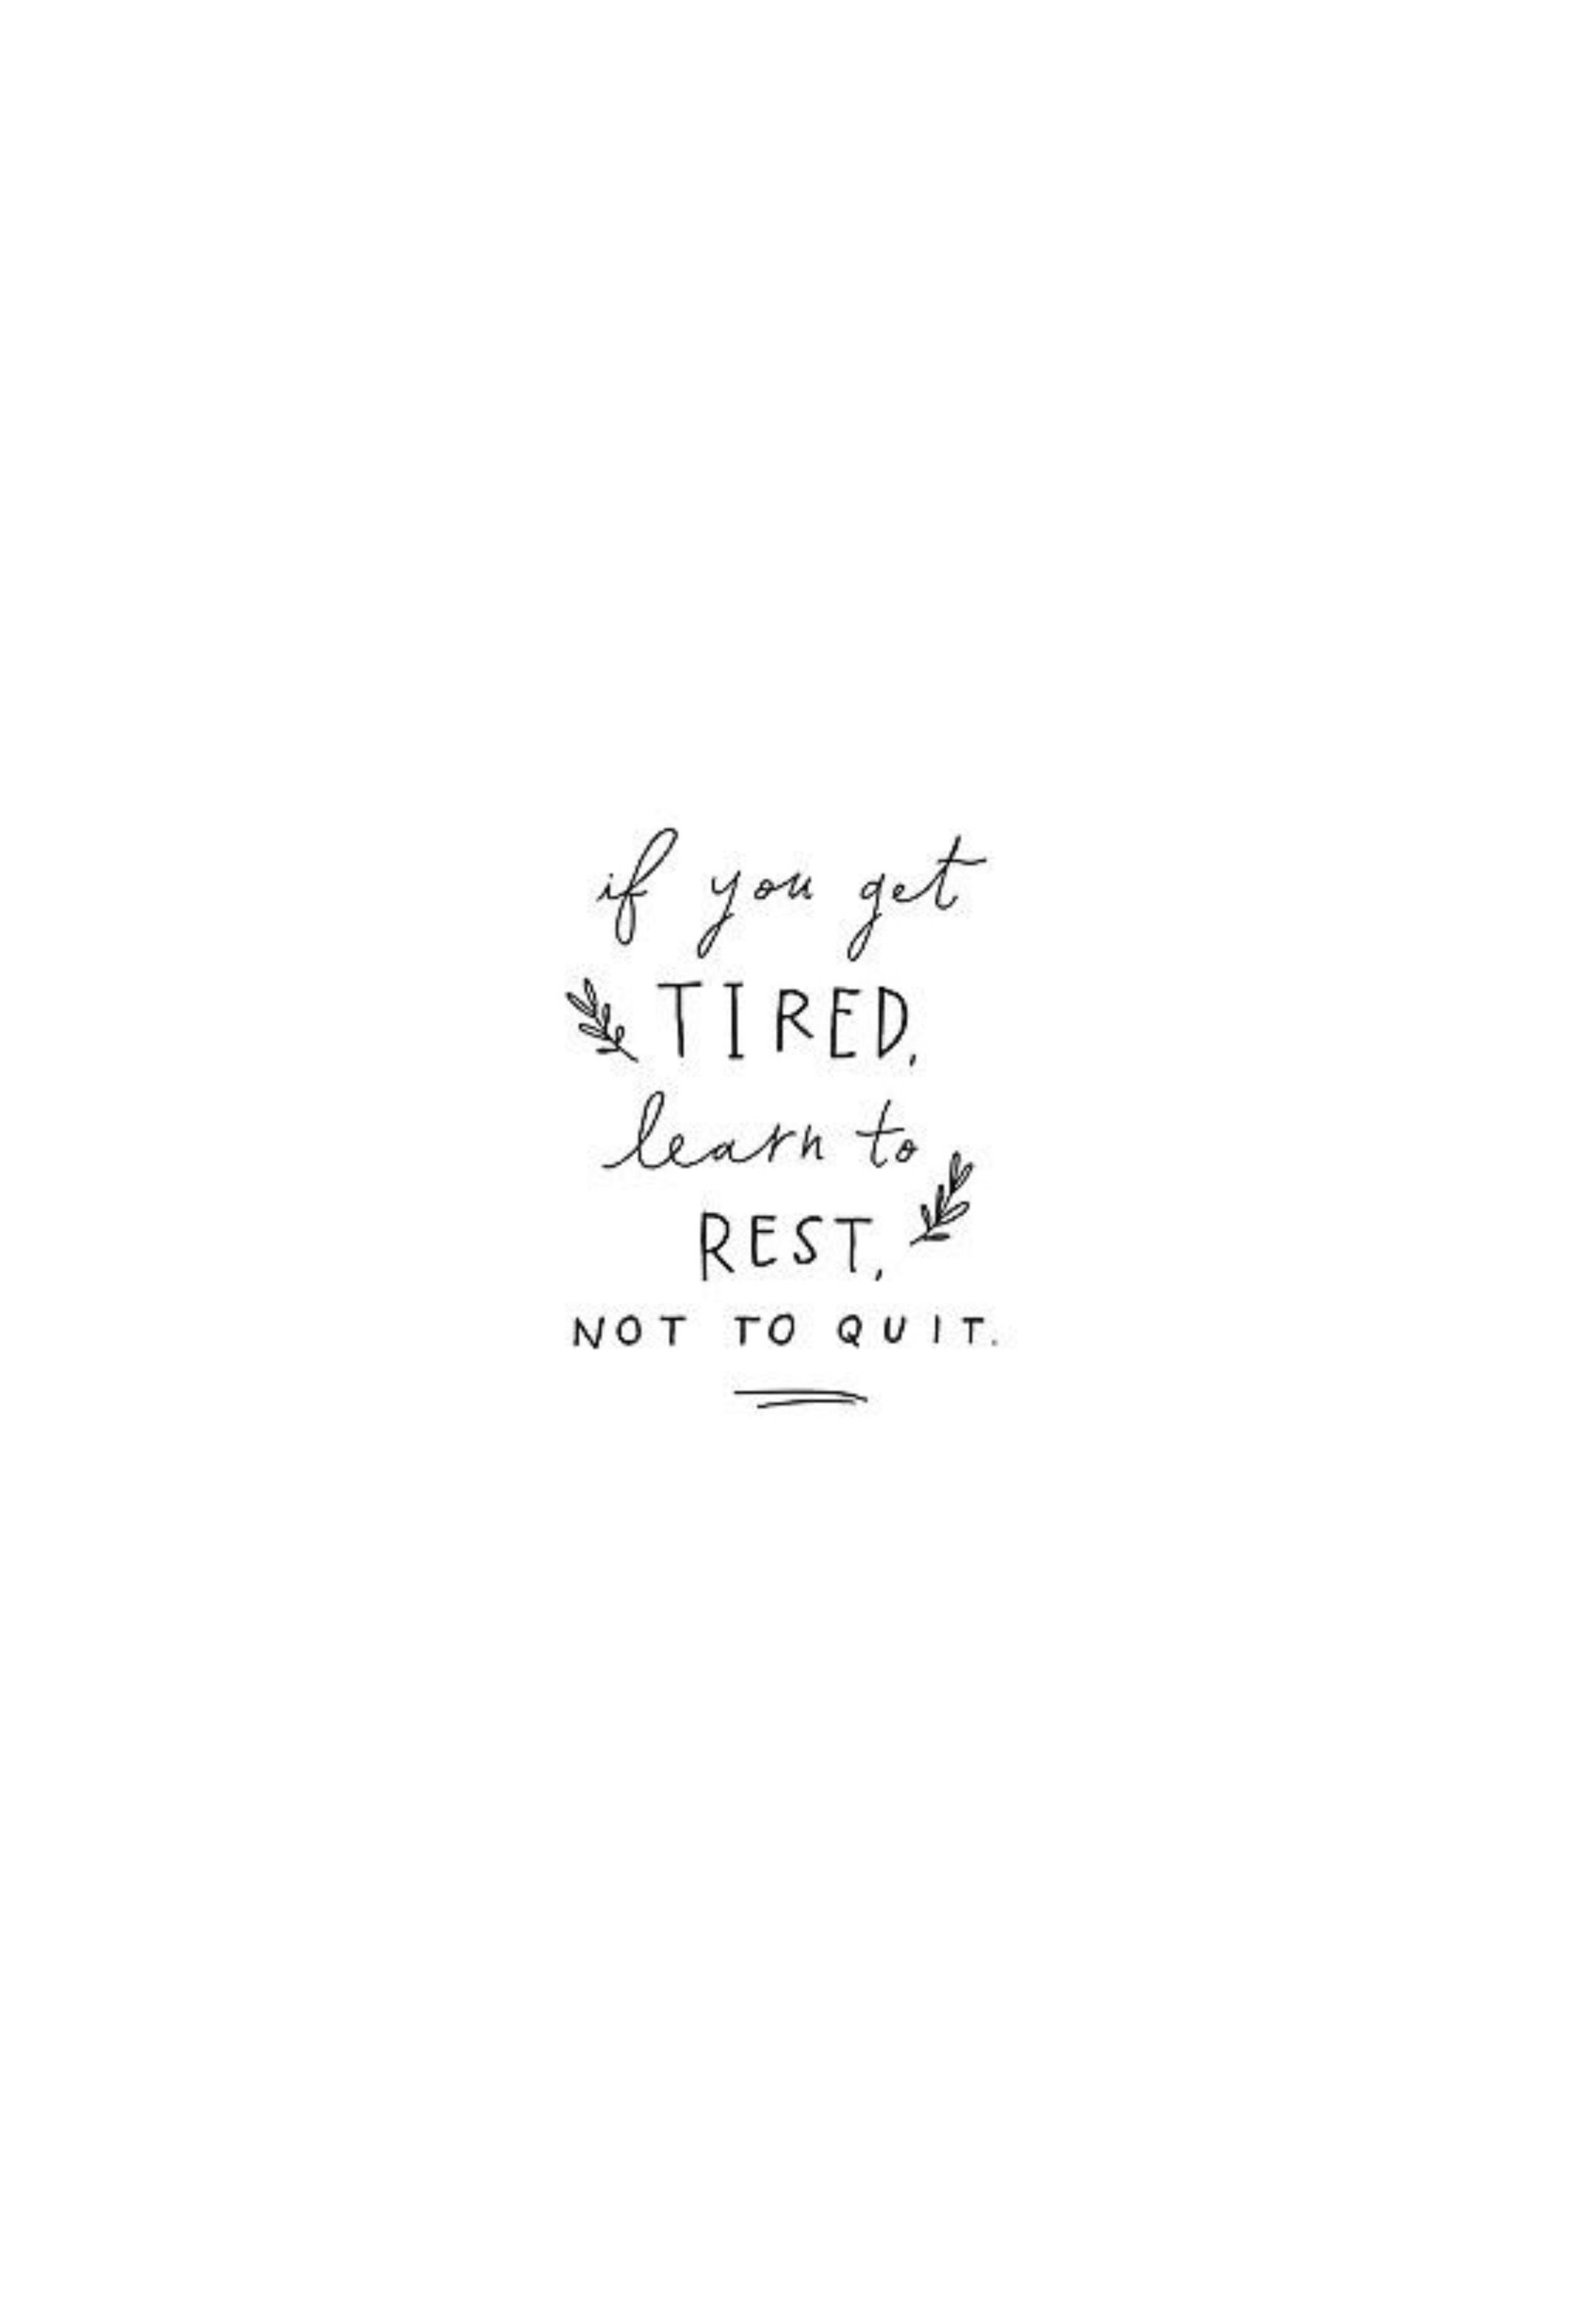 if you get tired learn to rest, not to quit #inspiration #wallpaper